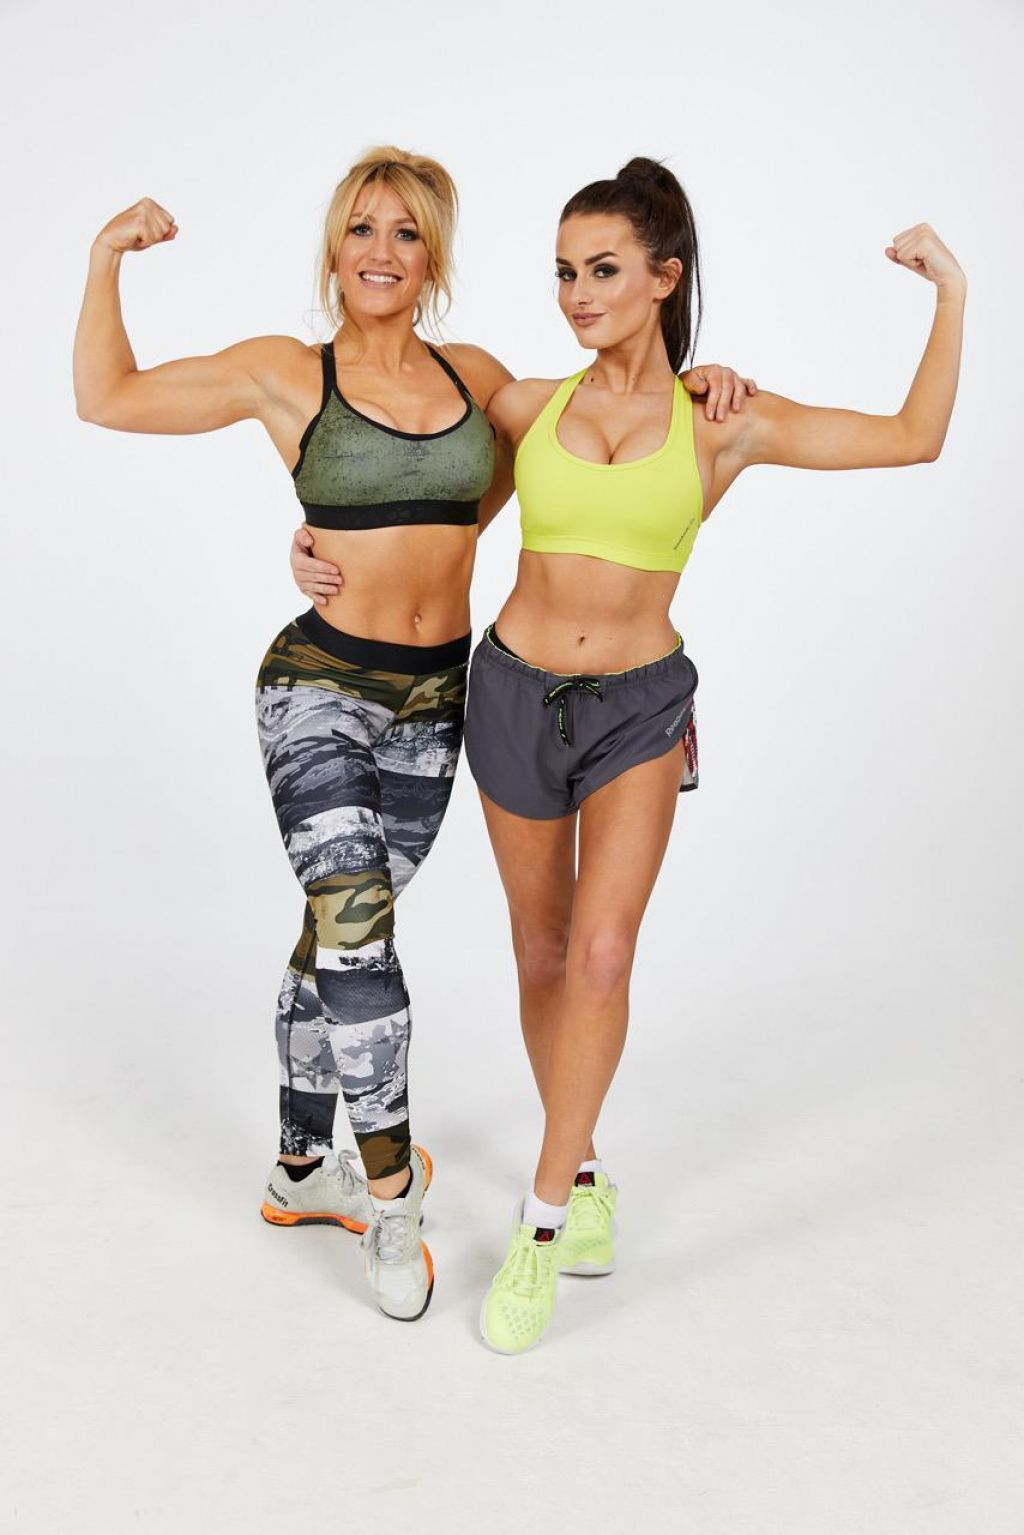 Amber Davies and Lisa Welham - Strong Not Skinny Fitness Photoshoot